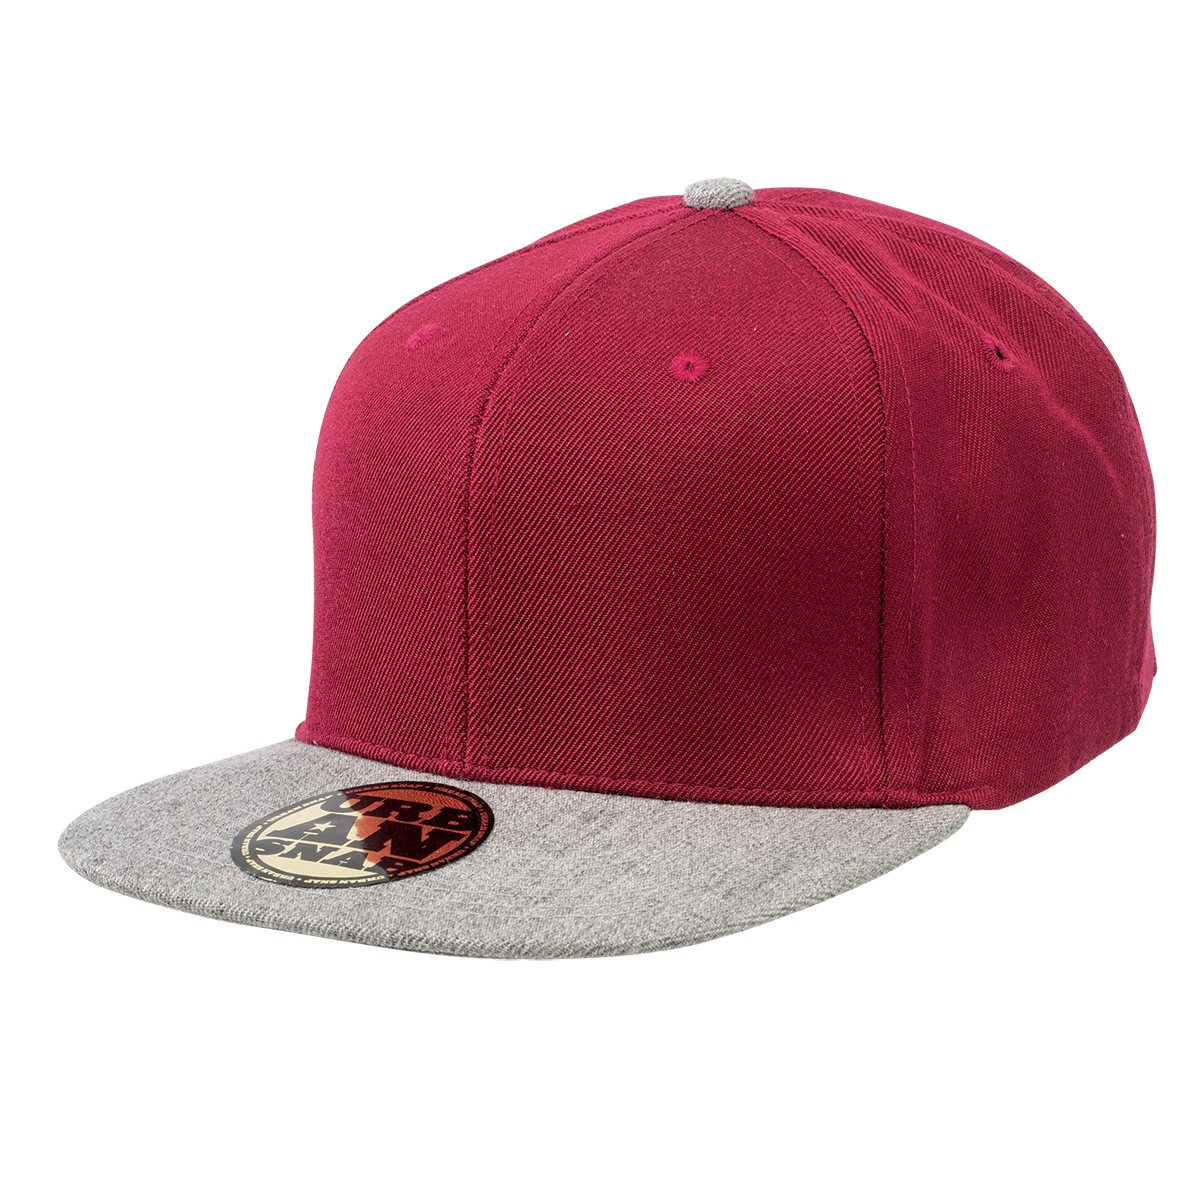 Fashion Cap with Snap Closure